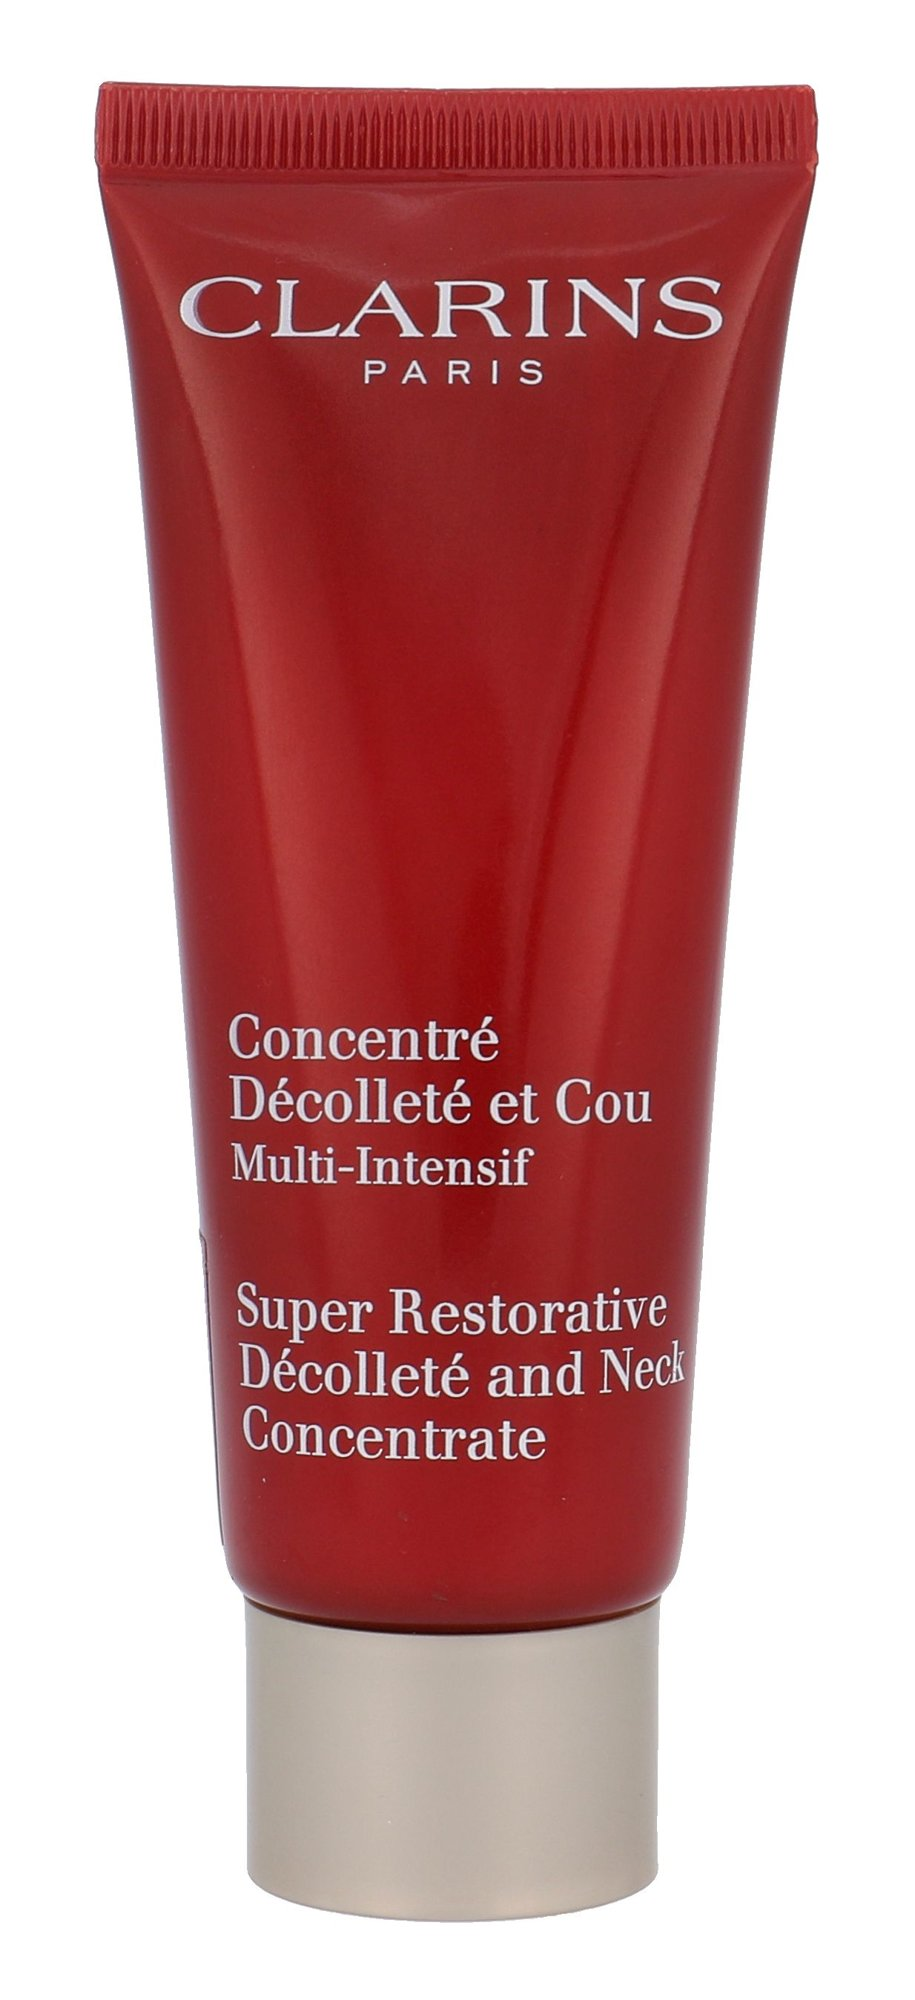 Clarins Super Restorative Cosmetic 75ml